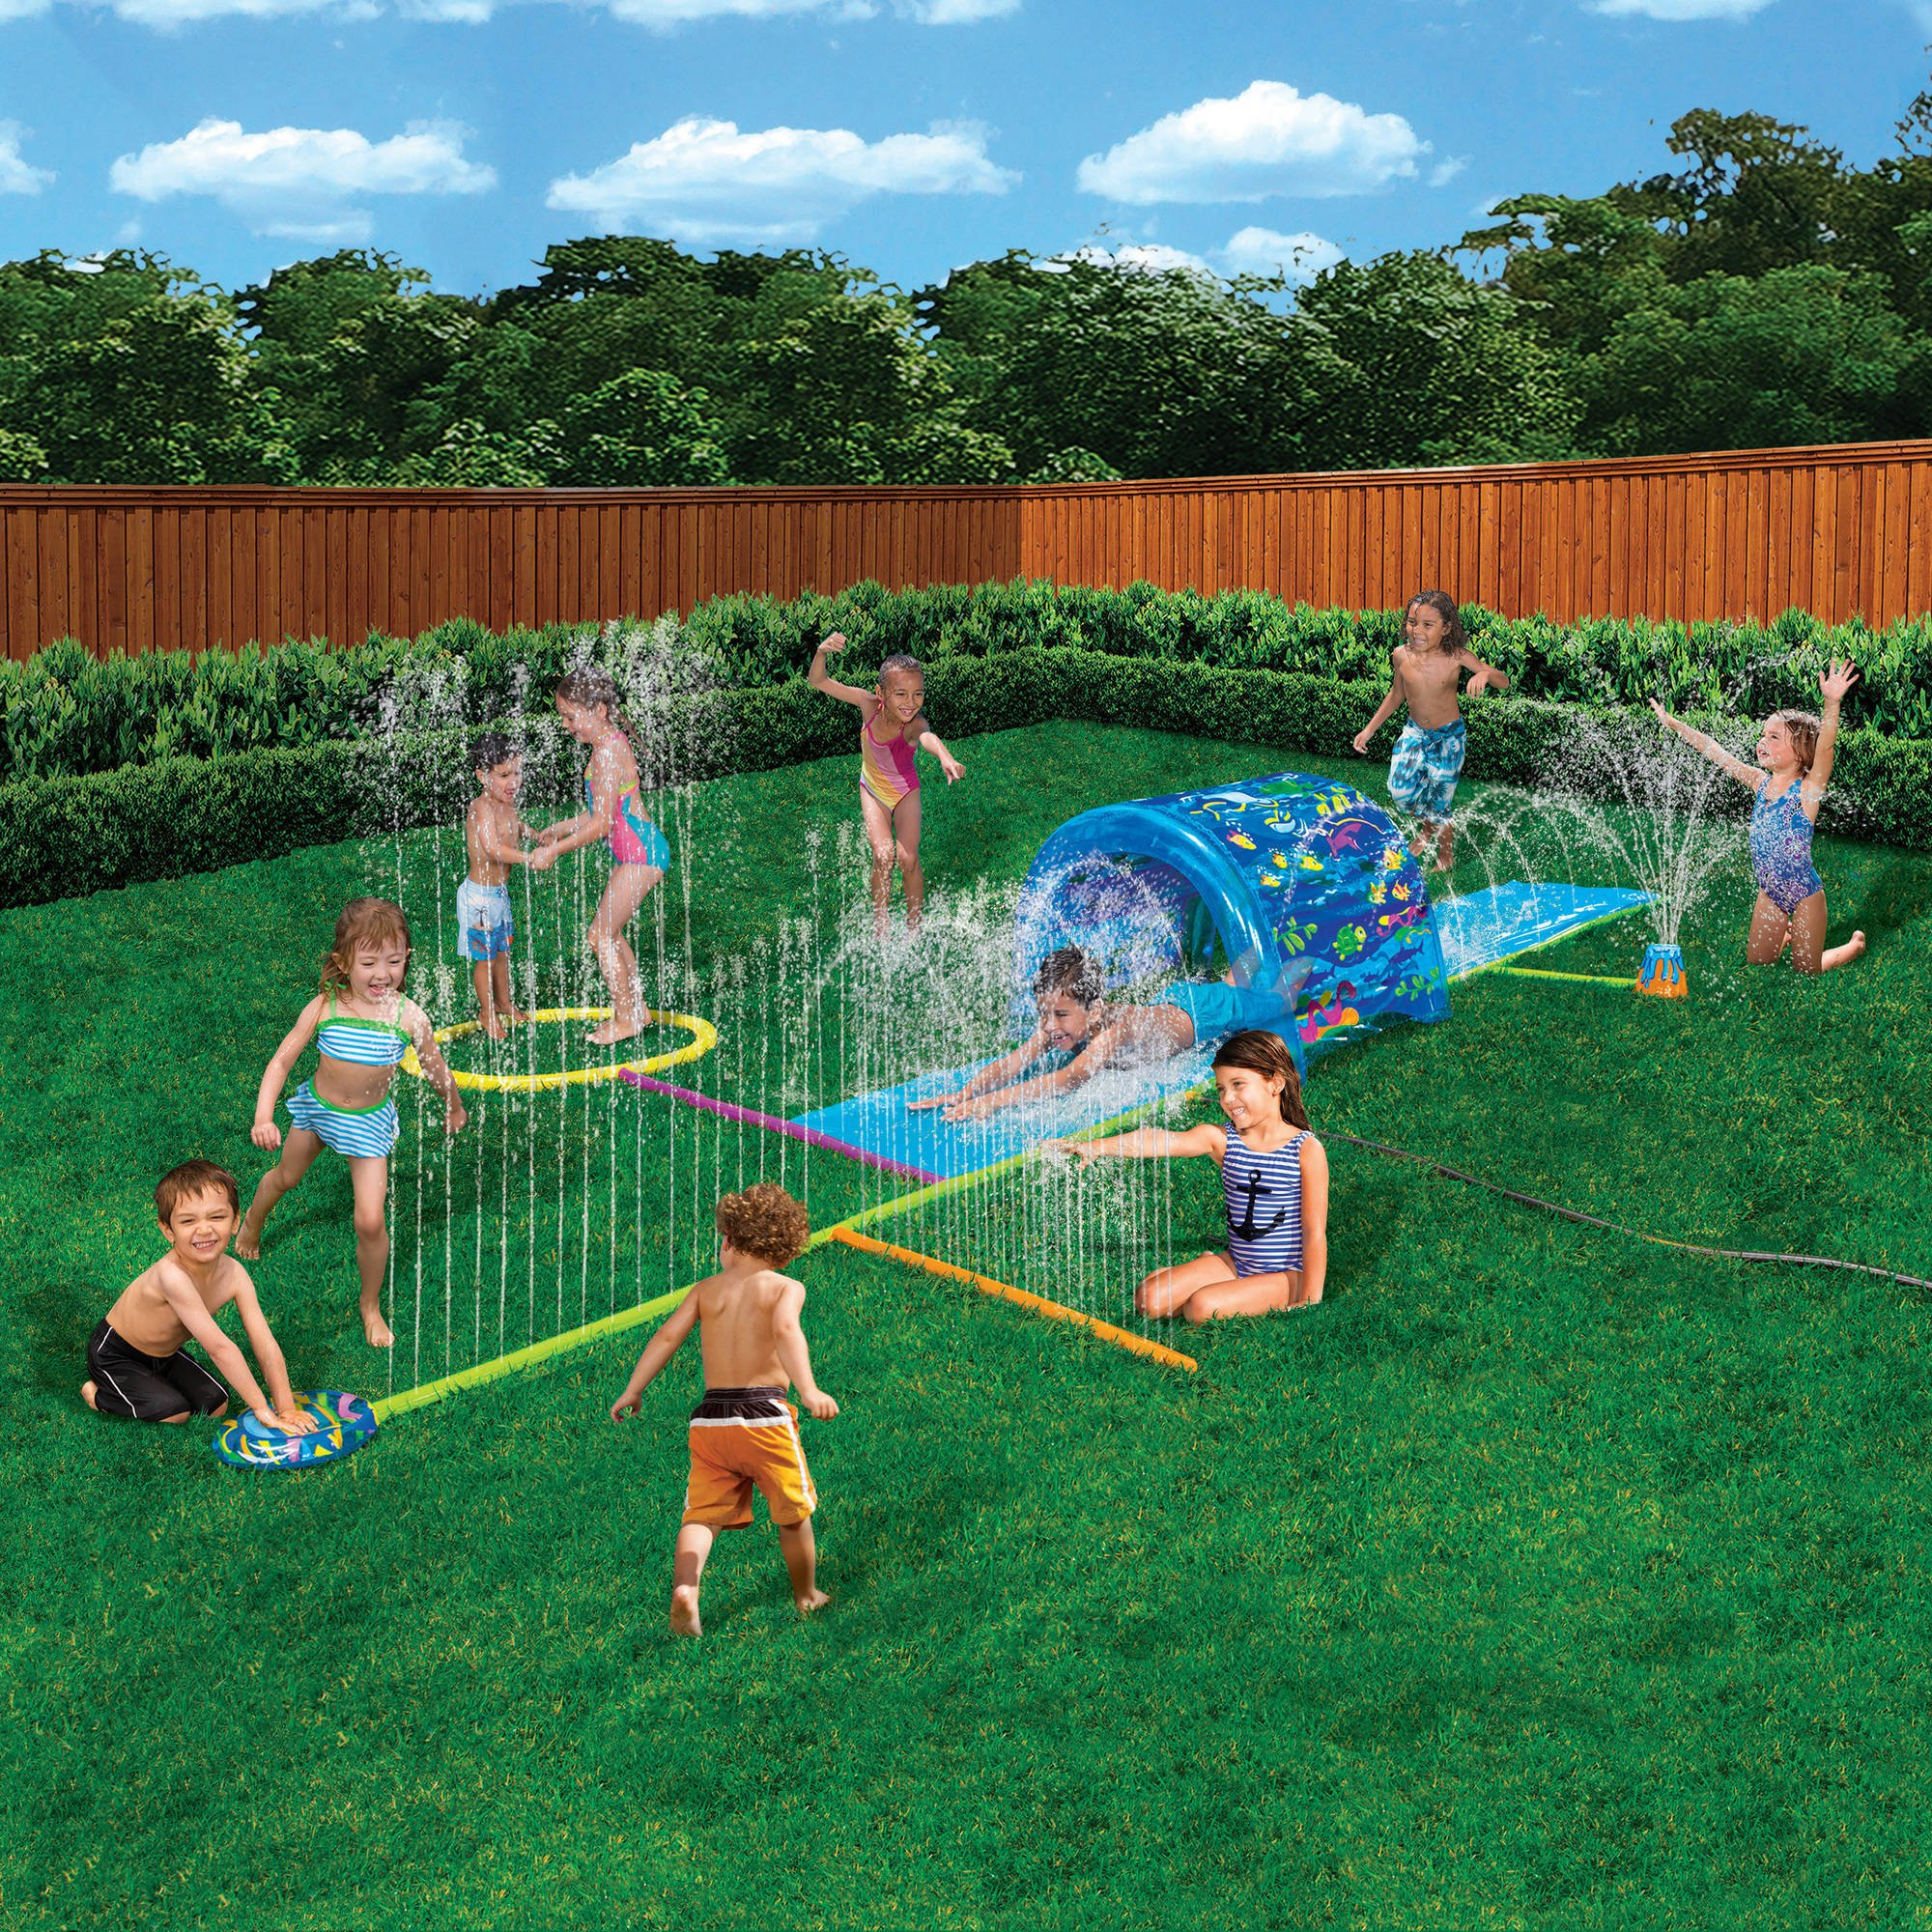 Inflatable Sprinkler Park Kids This Big Portable Kiddie Blow Up Above Ground Long Water slide Is Great For Toddlers, Children, Boys, Girls, Aqua Splash To Have Outdoor Water Fun With All Family. by Banzai